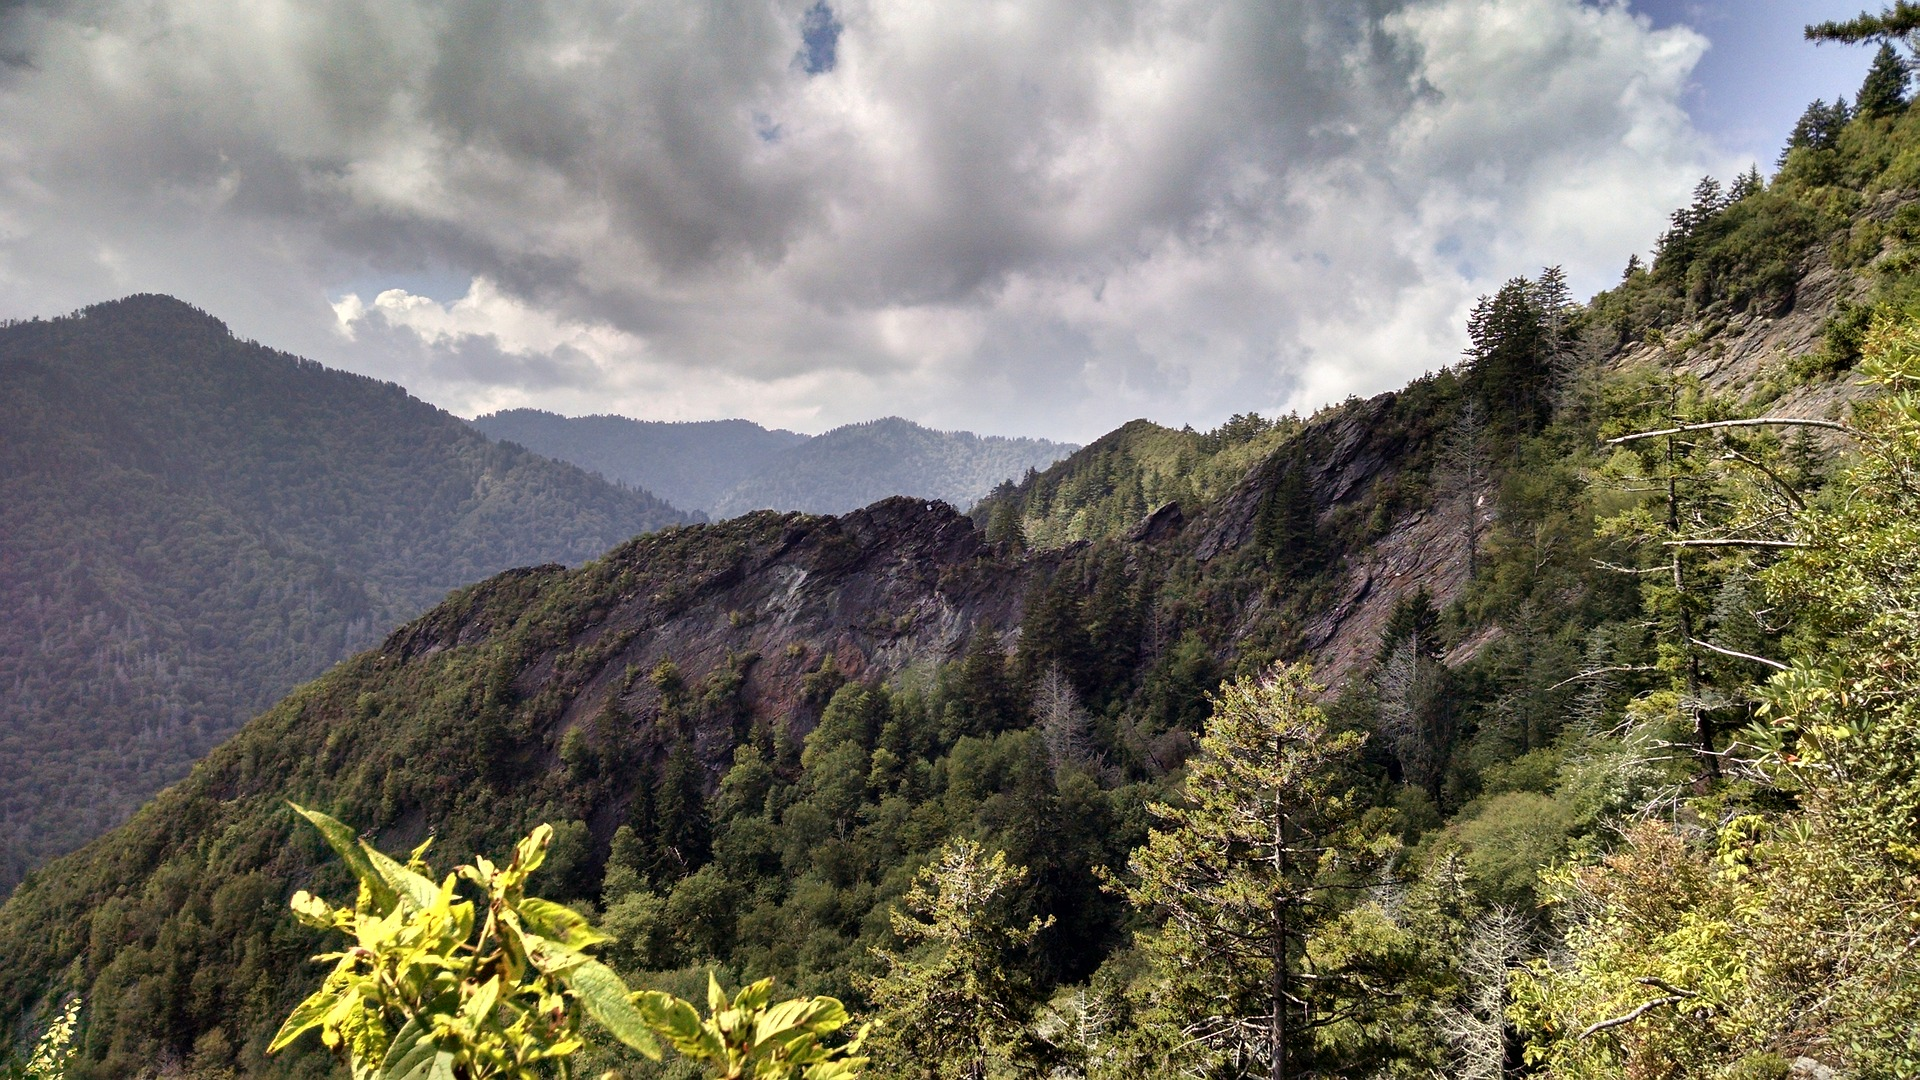 Camping in Great Smoky Mountains – What You Need to Know